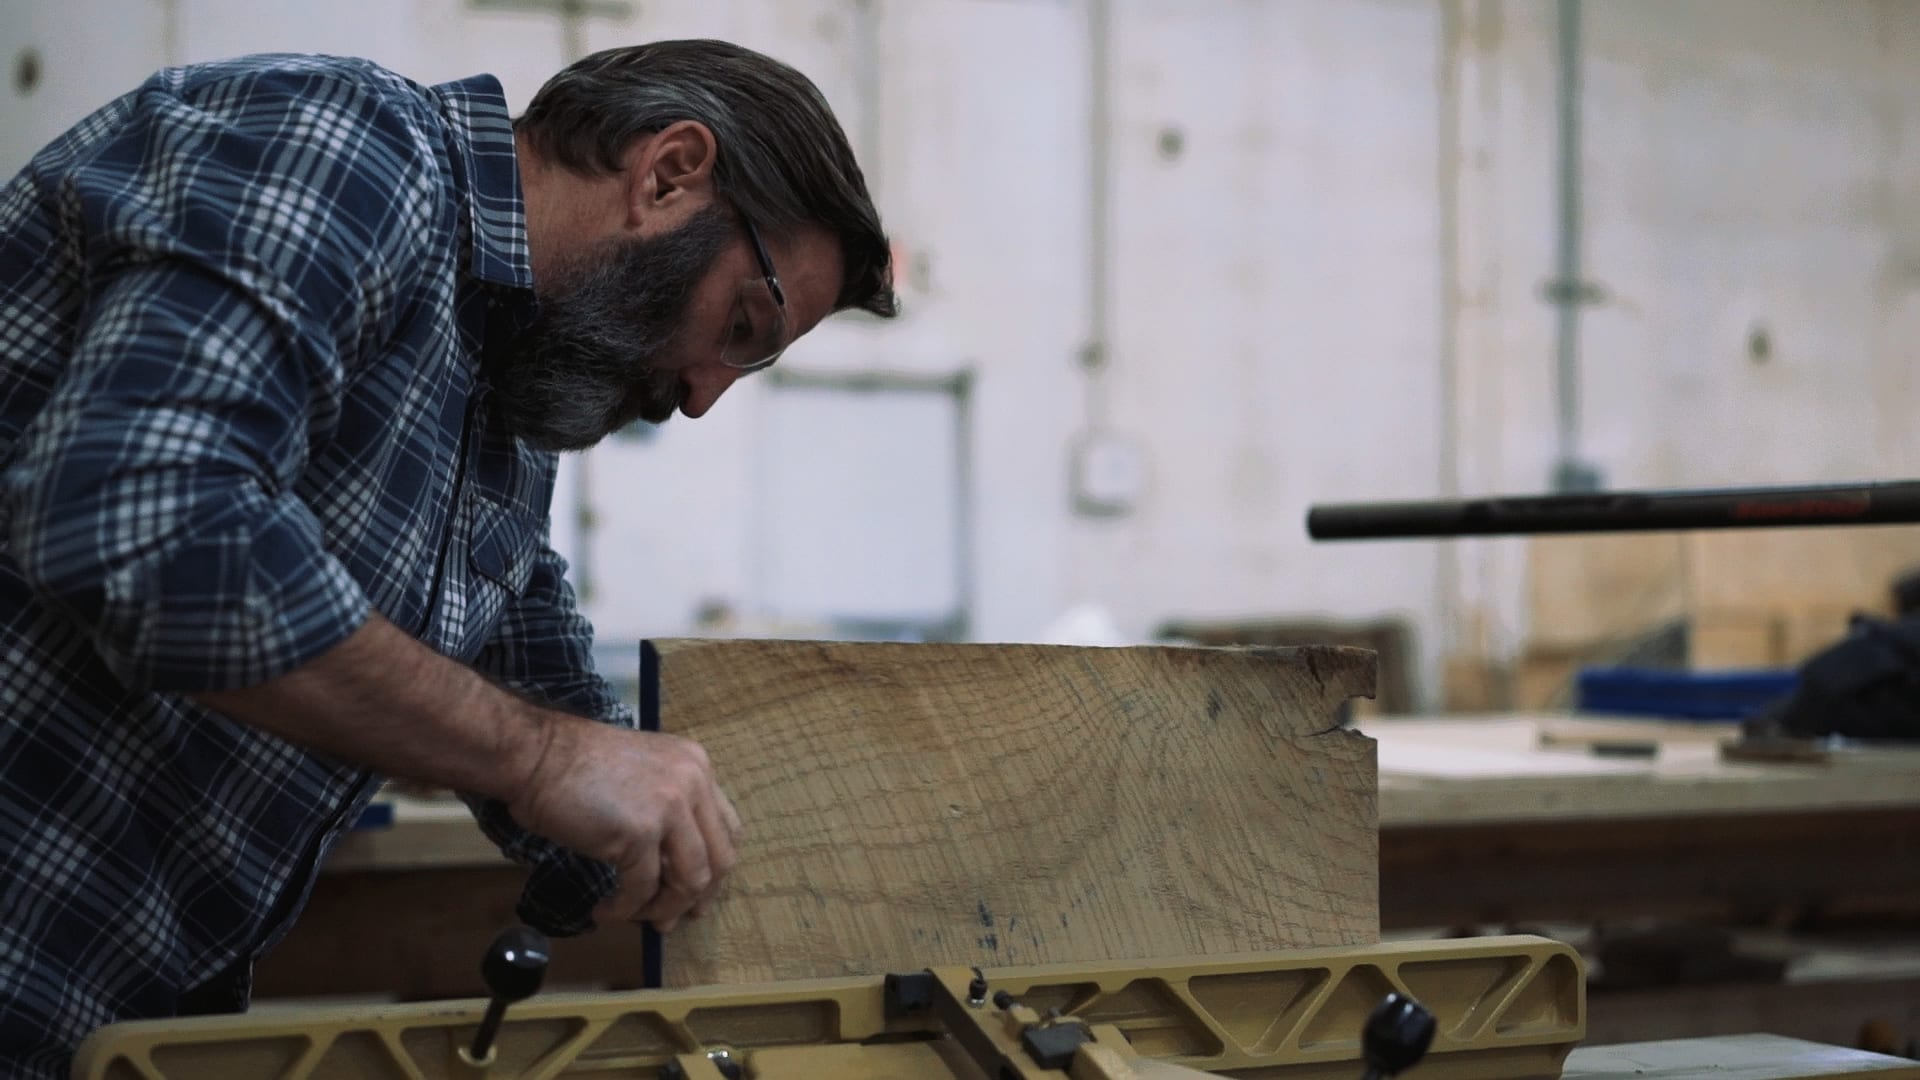 Jerry McCall, the creator of Stikwood peel and stick wood planks, cutting reclaimed wood on a table saw.